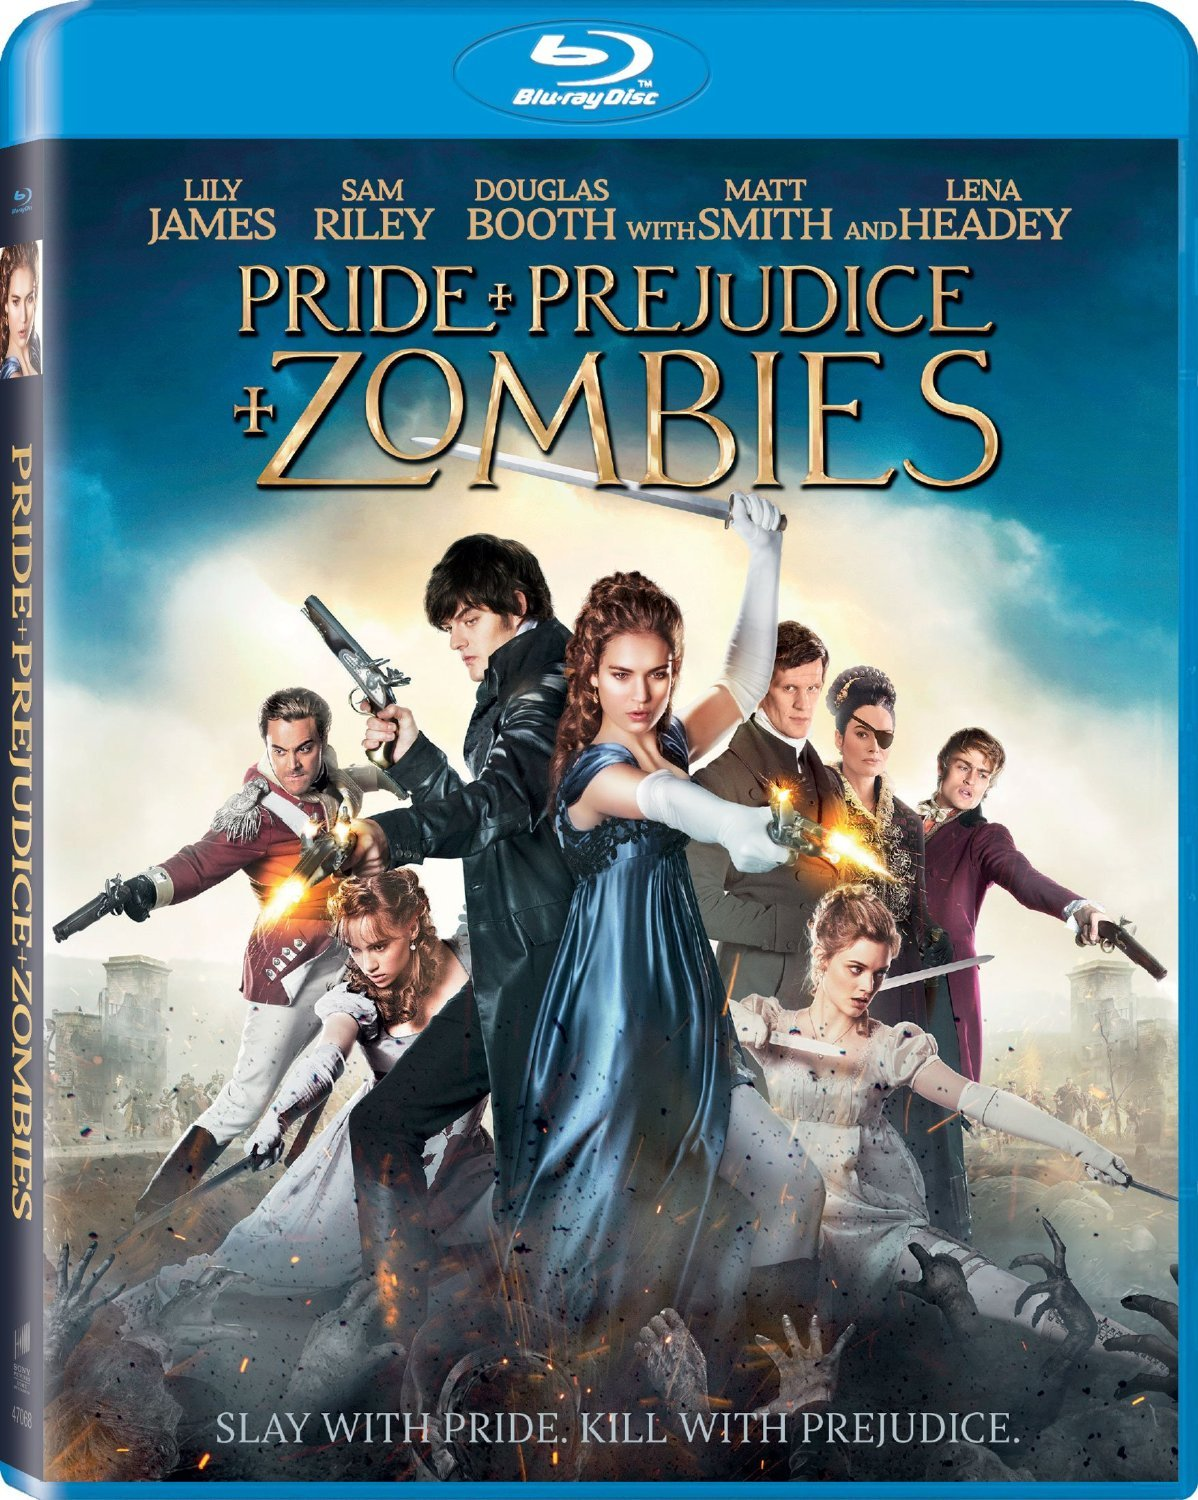 Pride + Prejudice + Zombies (2016) Blu-ray